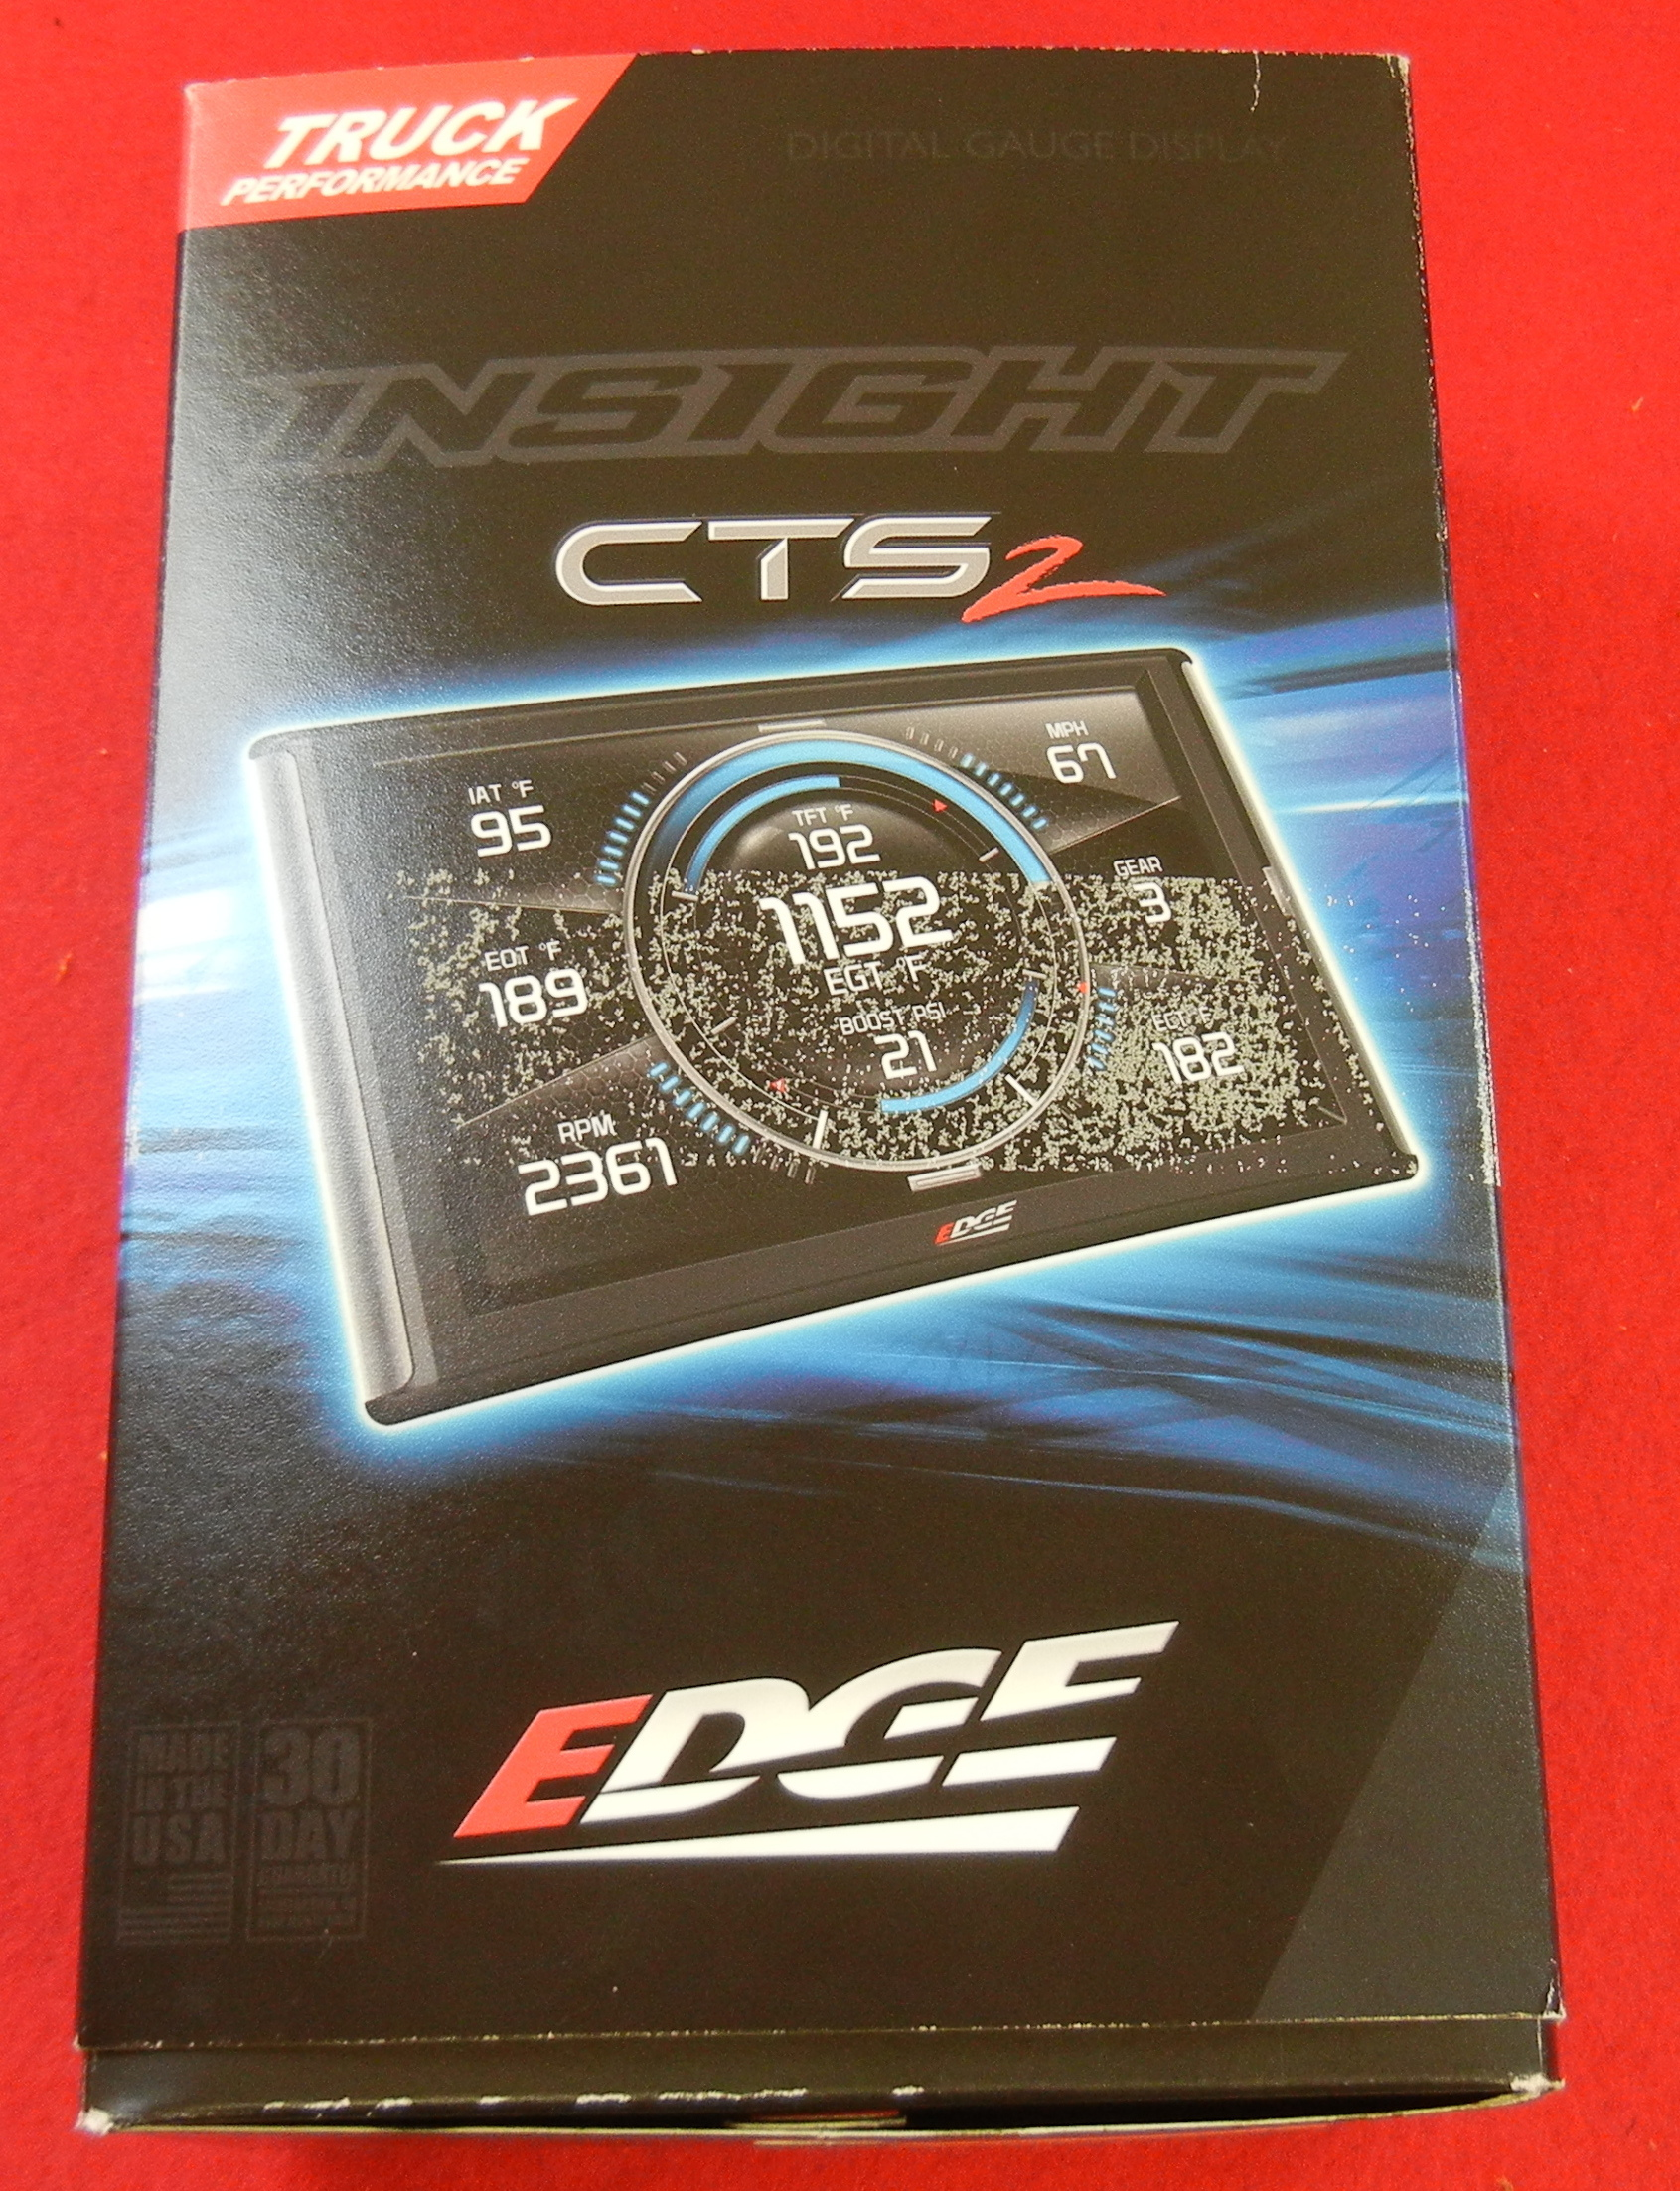 EDGE - CTS2 84130 TRUCK PERFORMANCE MONITOR